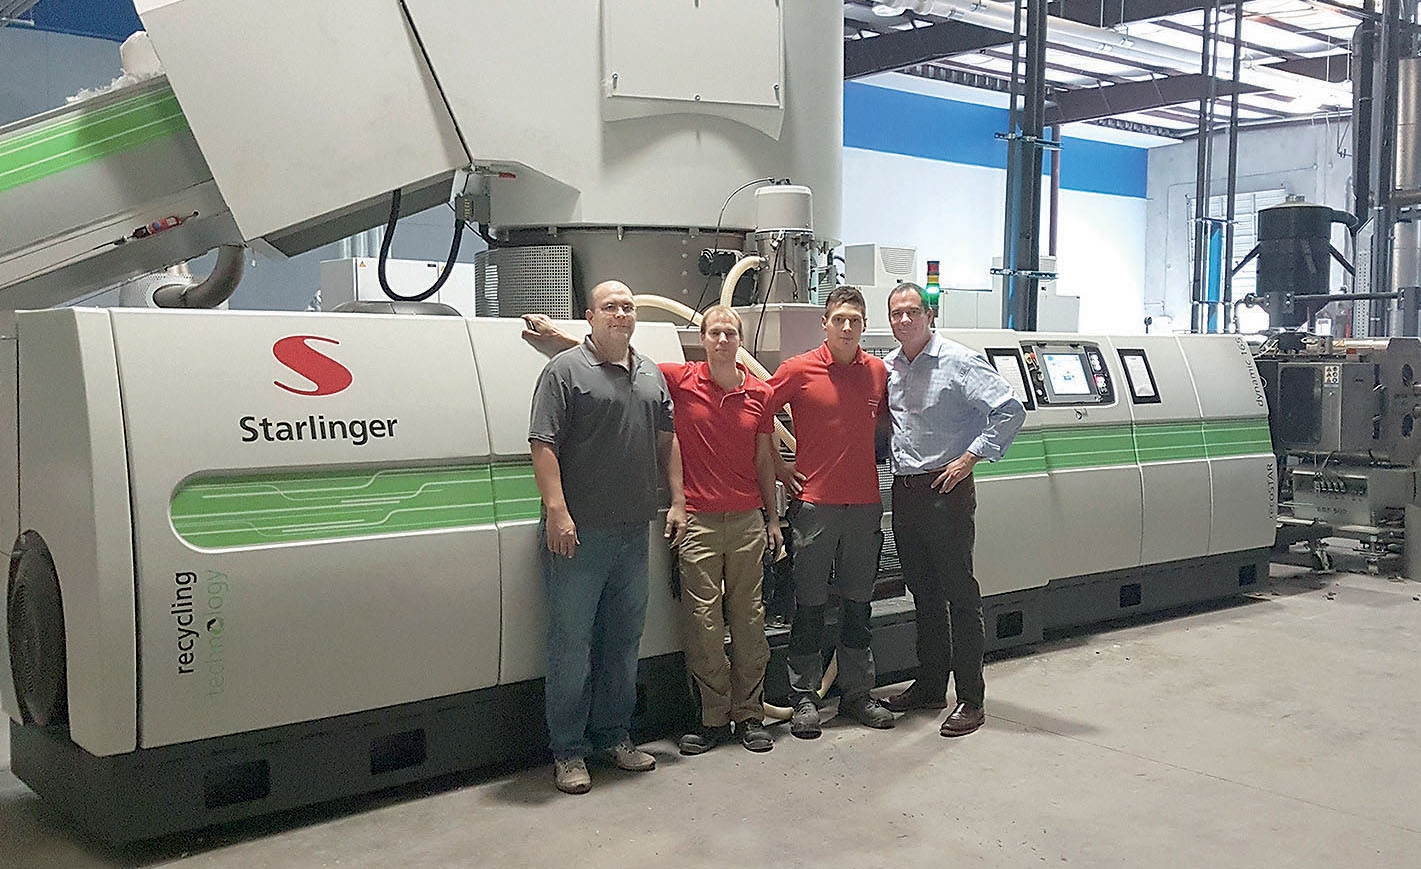 One Of Two Starlinger Systems Delivered To Houston